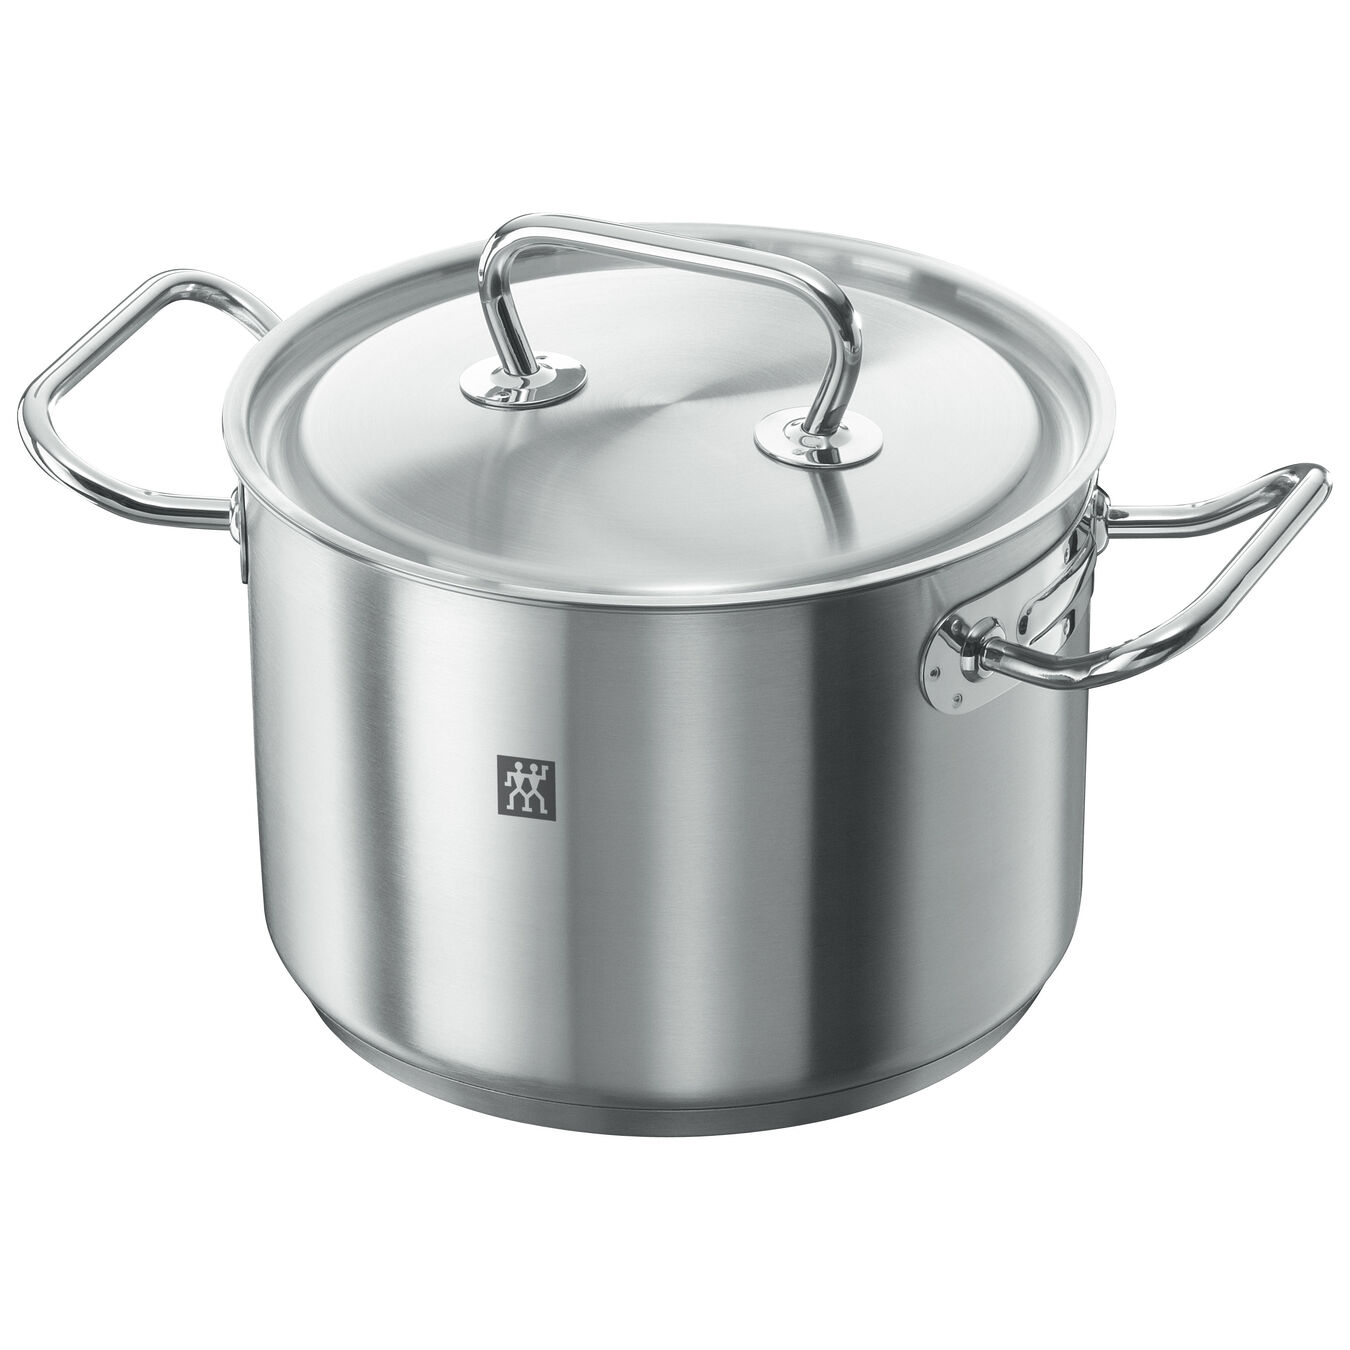 12-pcs 18/10 Stainless Steel Set de casseroles et de poêles,,large 2